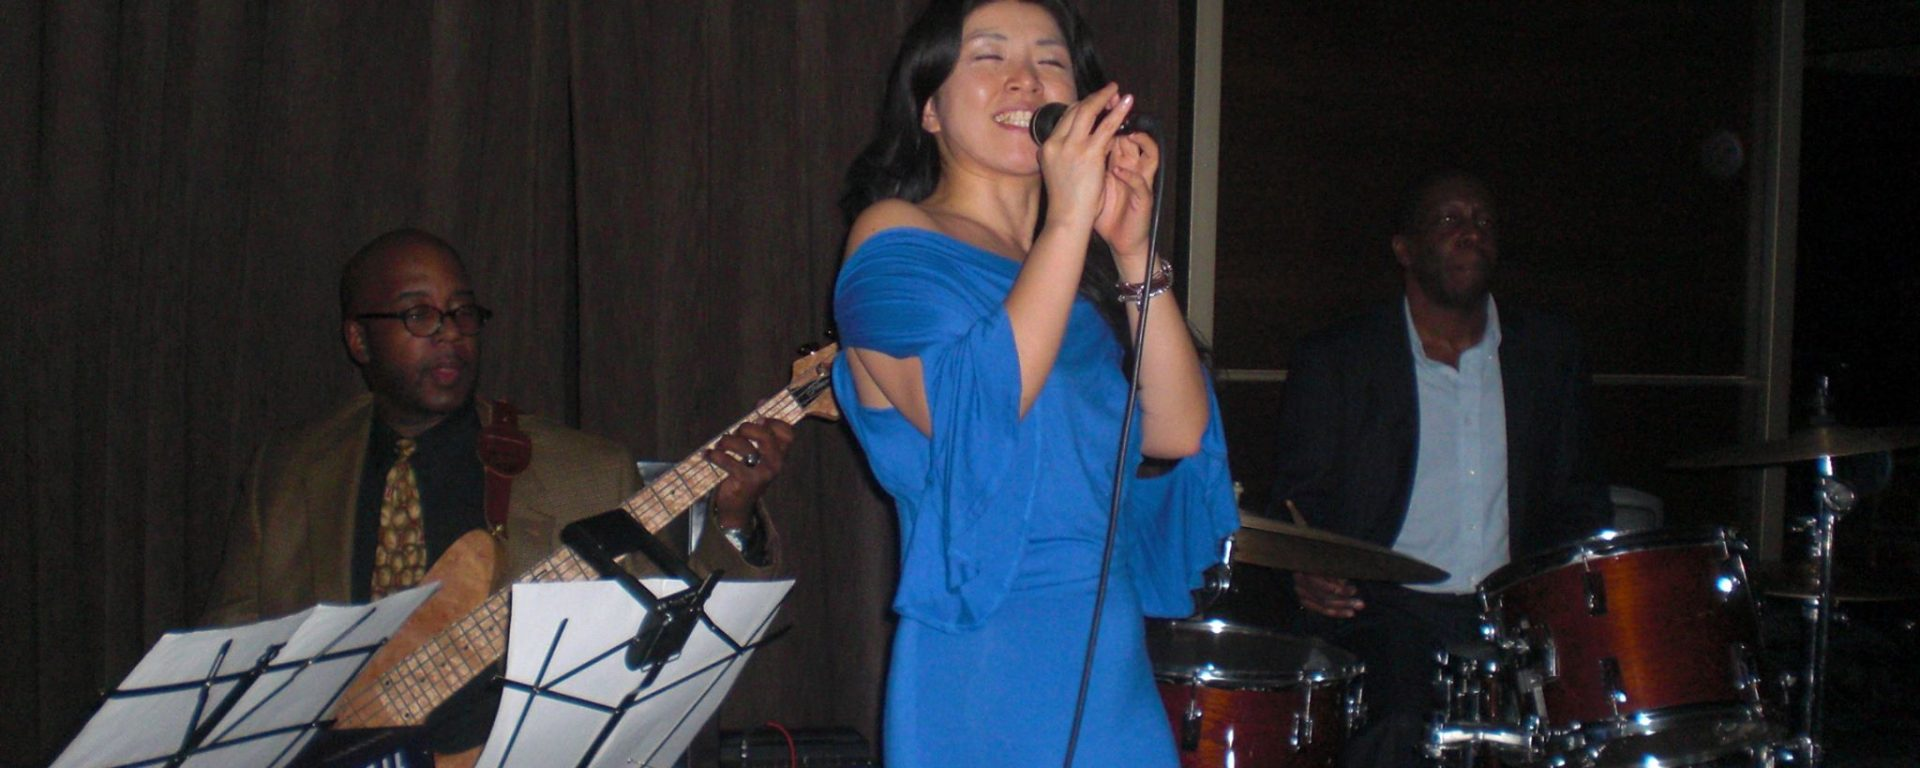 jazz, TAEKO, singer, music, performance, the Sound Bite, Hell's Kitchen, Japan, NYC, performance